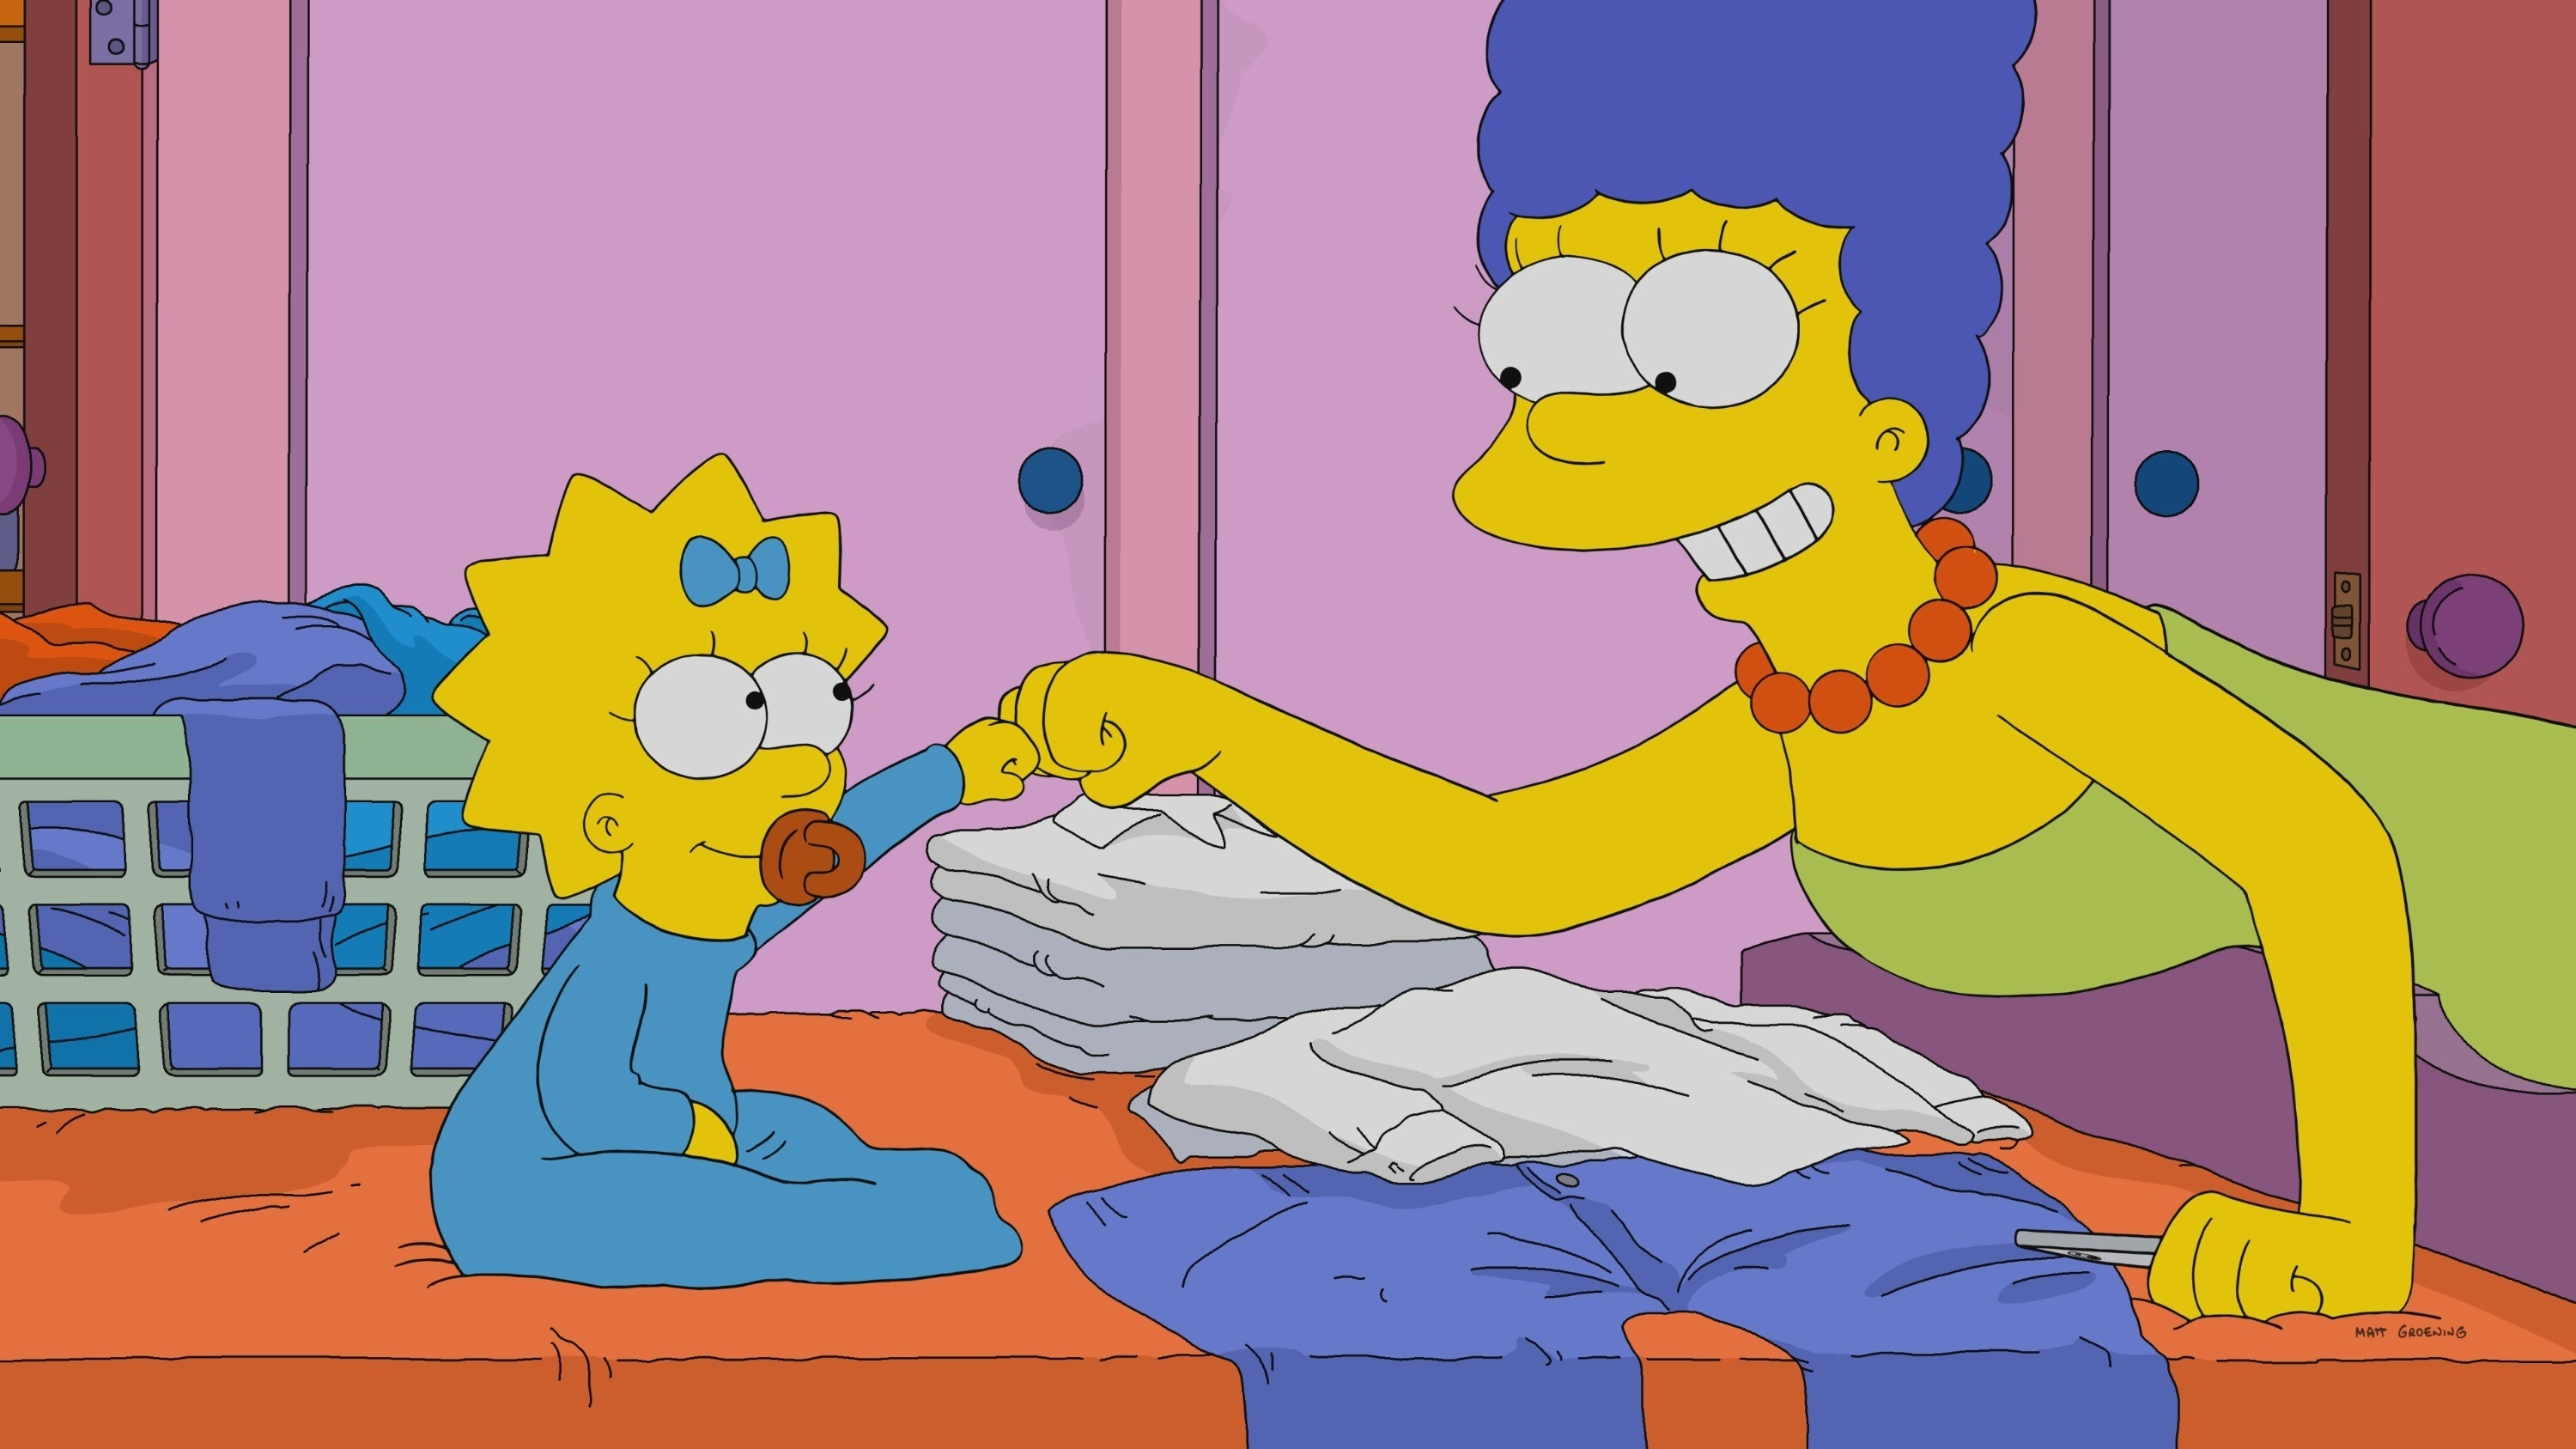 Marge and Maggie Simpson fist bump while folding laundry